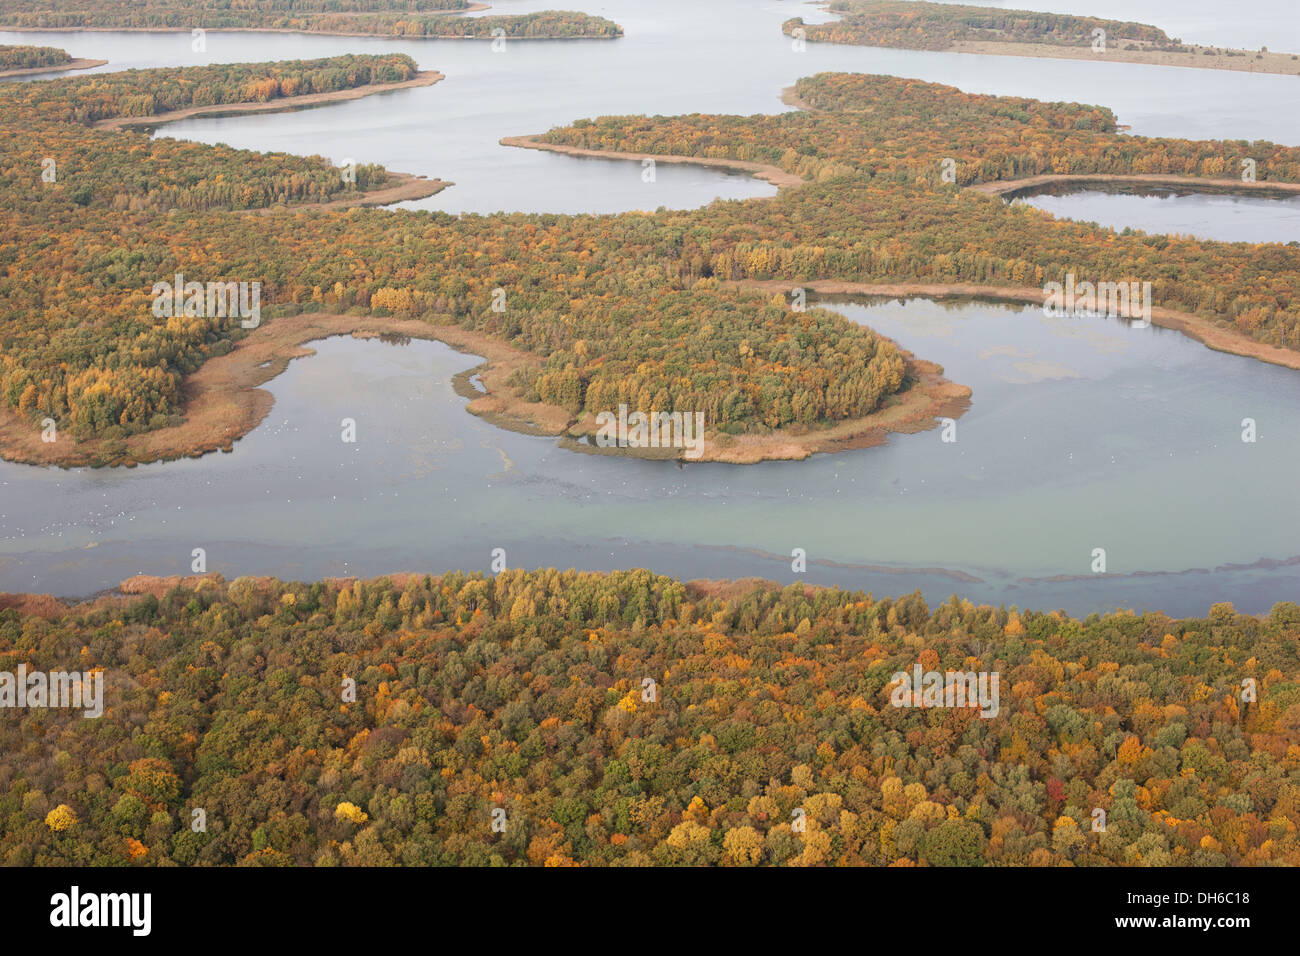 LAKE MADINE (aerial view). Reservoir near the village of Montsec, Meuse, Lorraine, France. - Stock Image